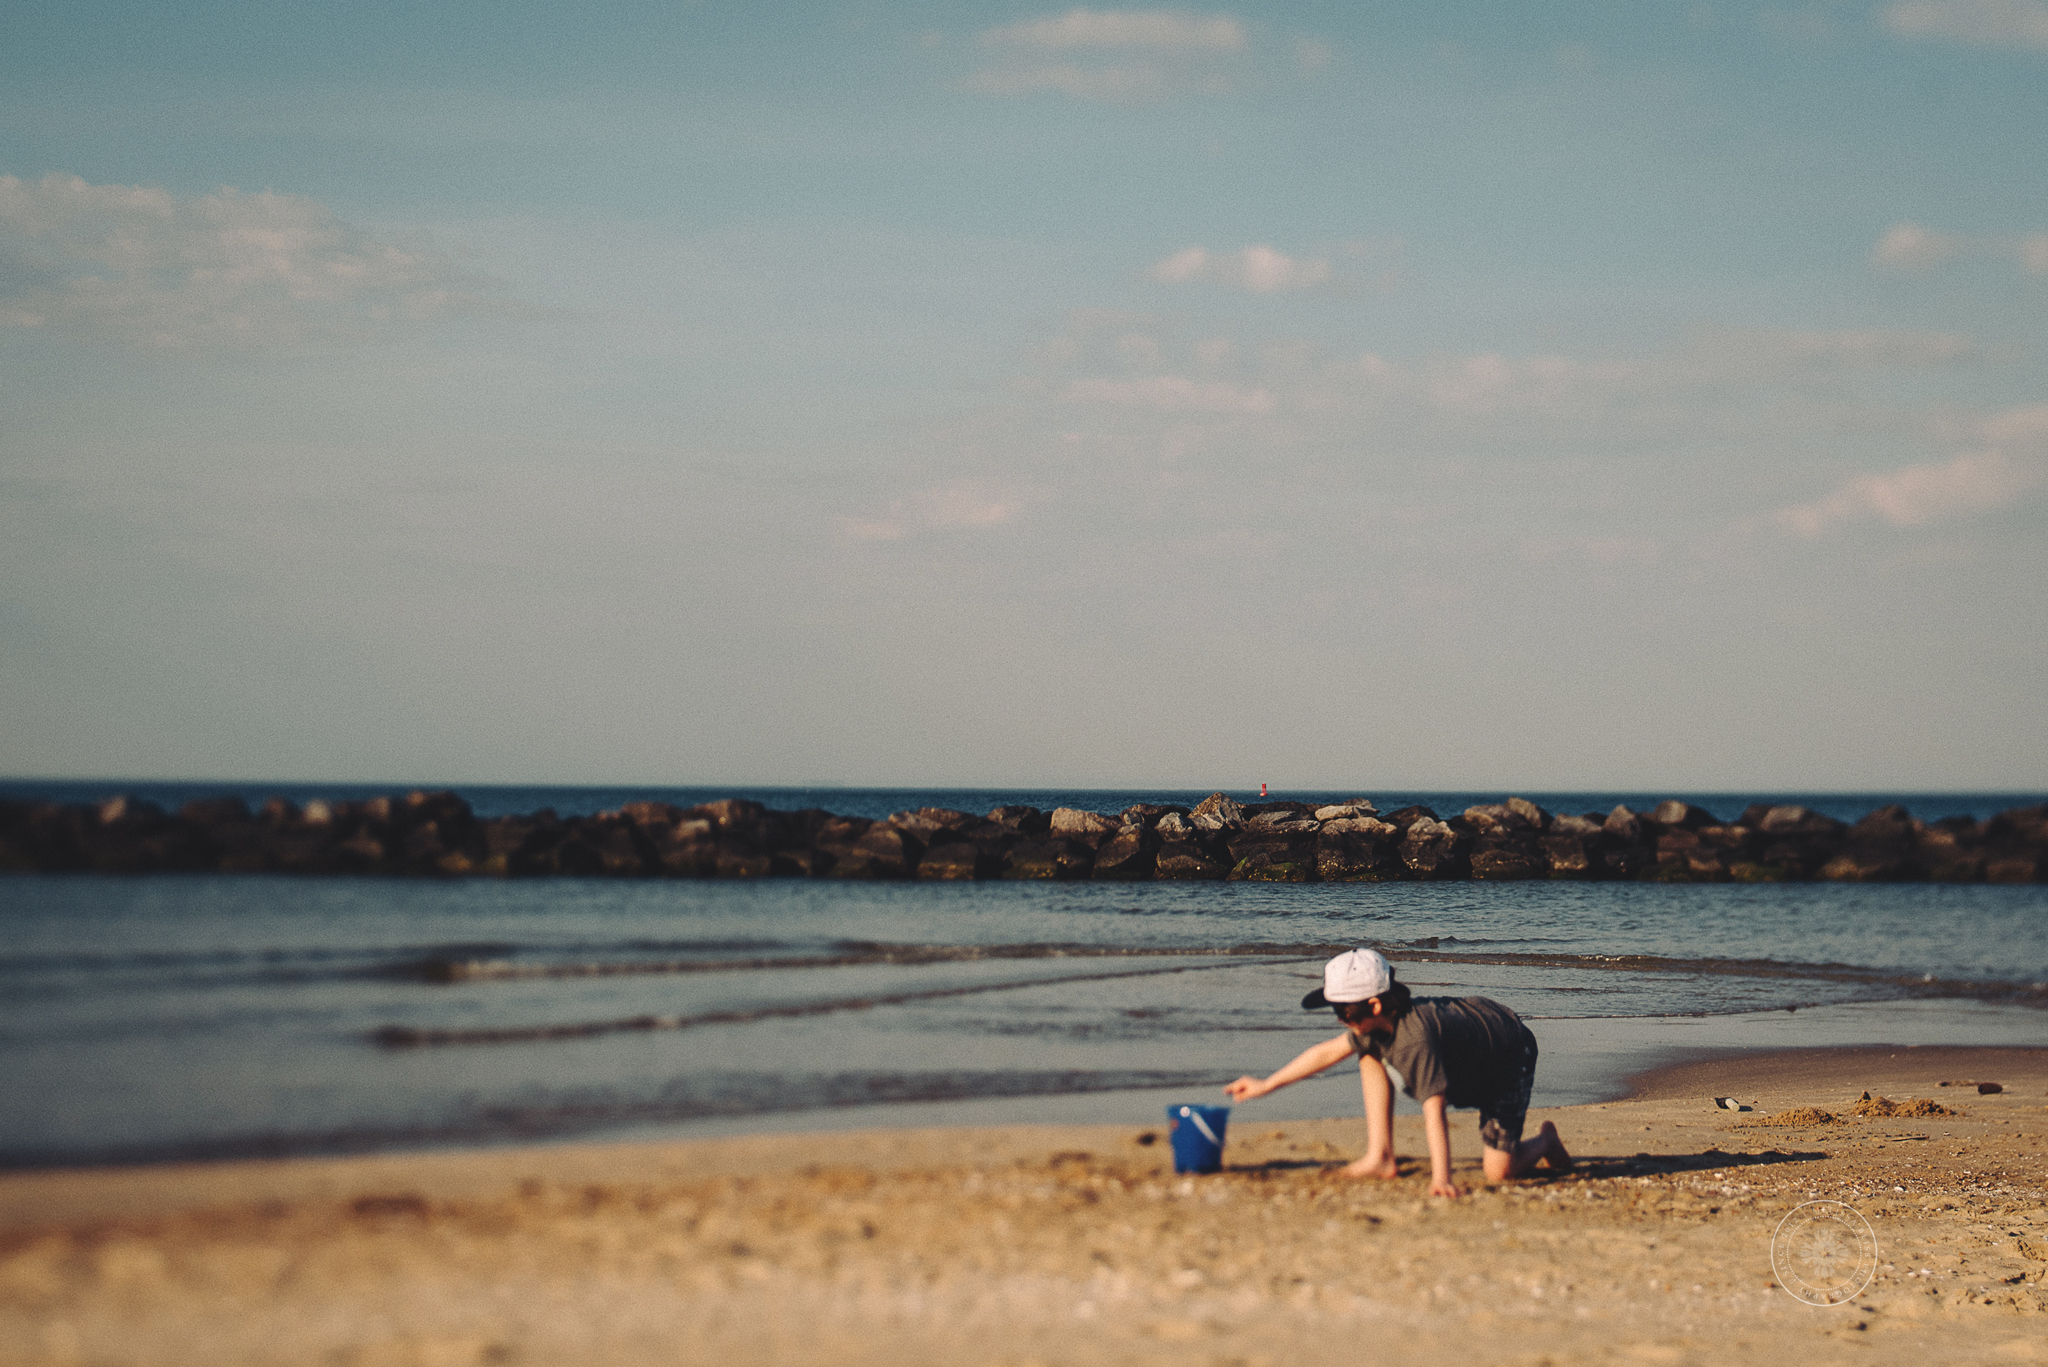 melissa-bliss-photography-virginia-beach-boy-playing-in-sand